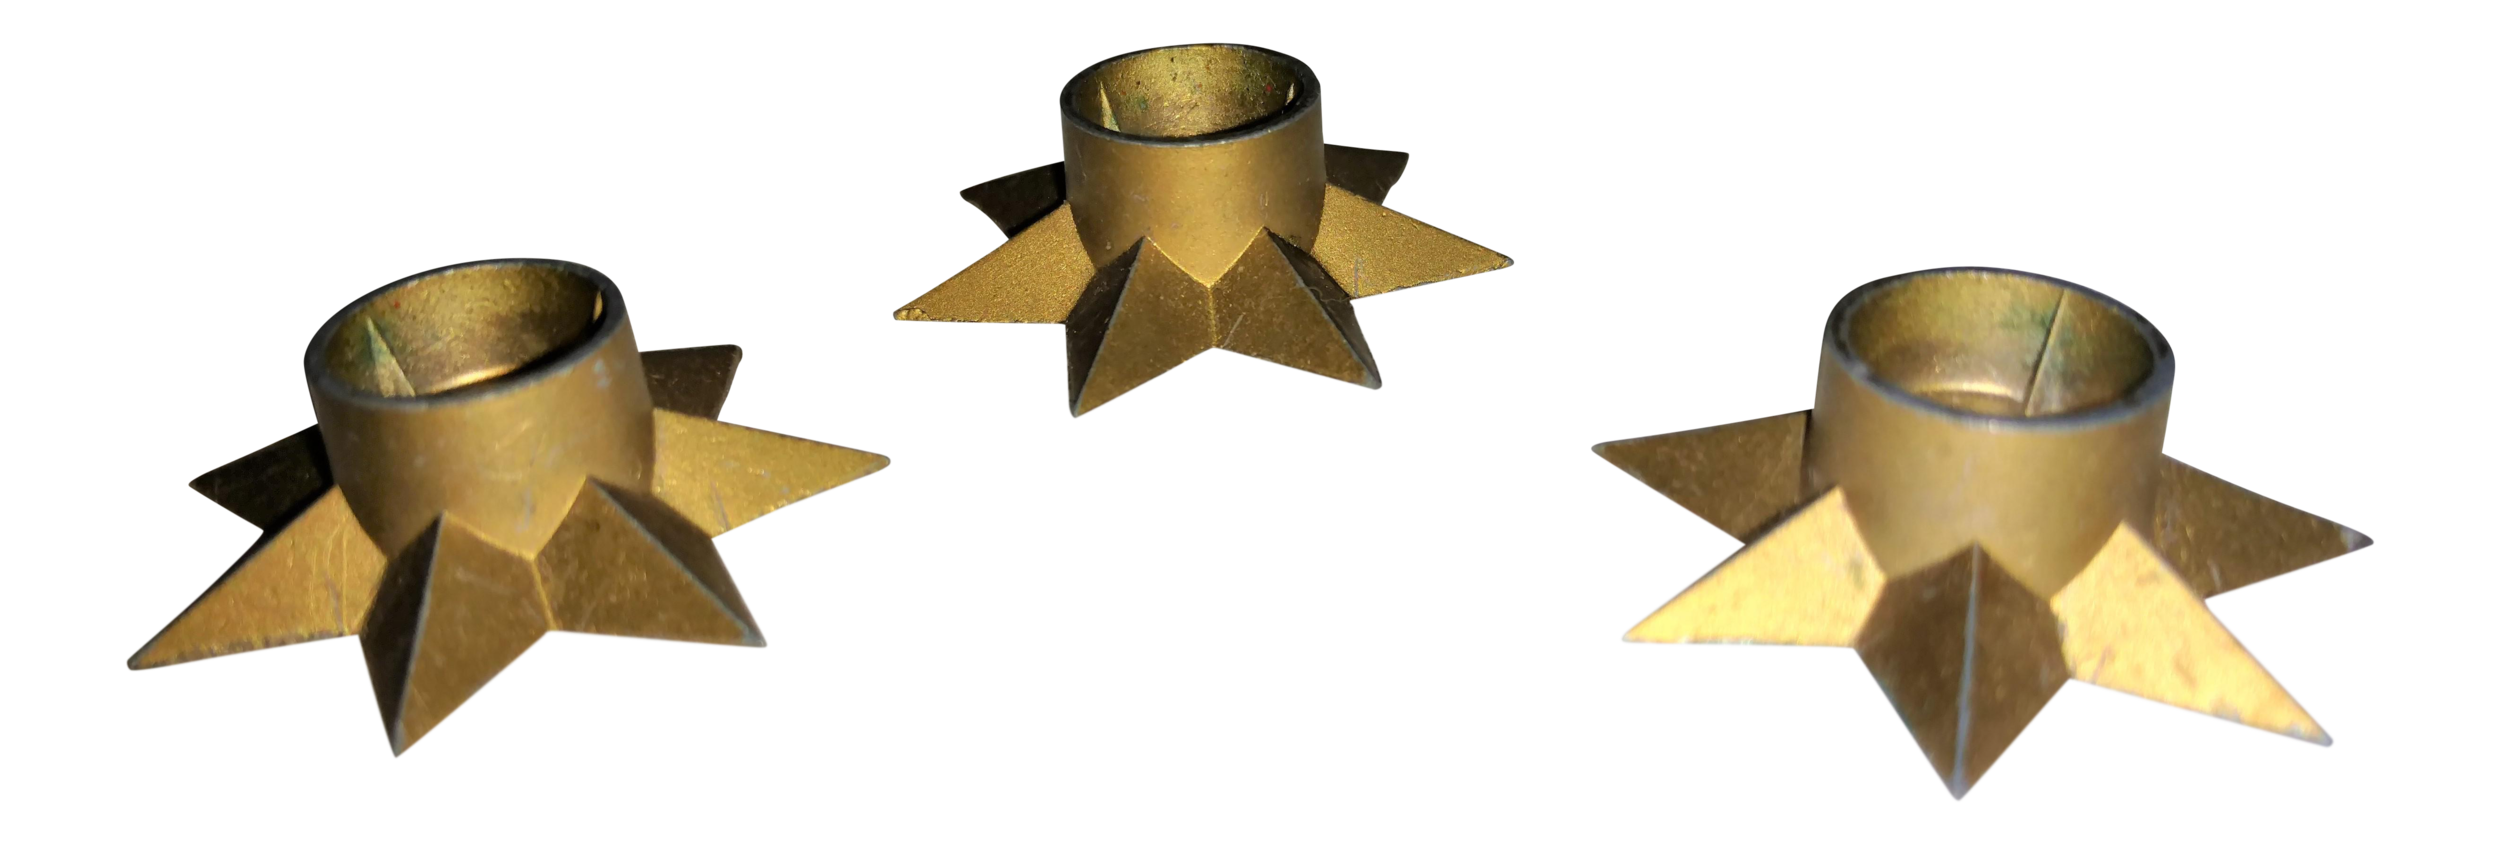 danish-modern-metal-star-candle-holders-set-of-3-5337.png